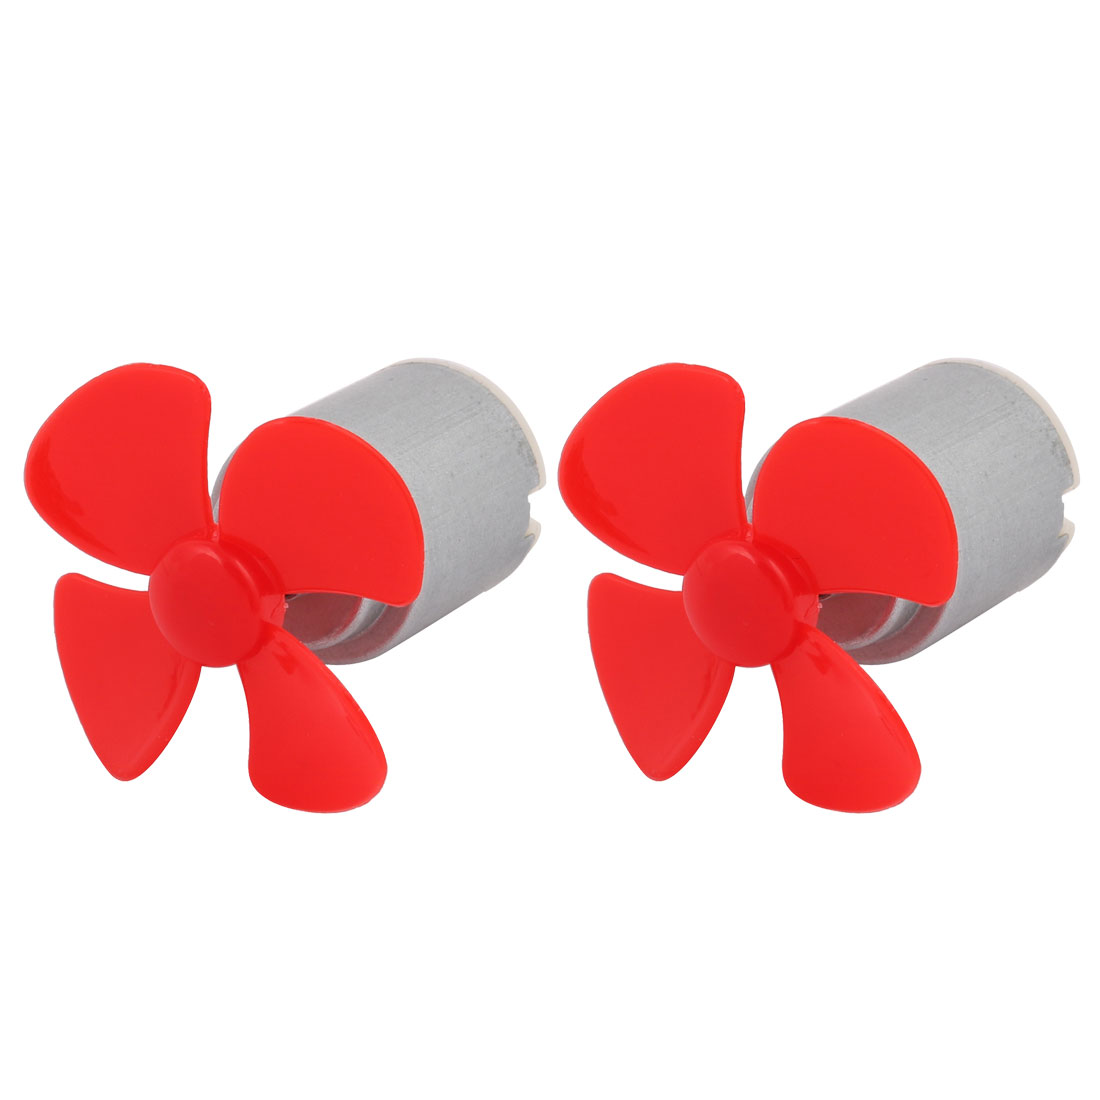 2pcs DC 3V 0.13A 17200RPM Strong Force Motor 4 Vanes 40mm Red Propeller for RC Aircraft